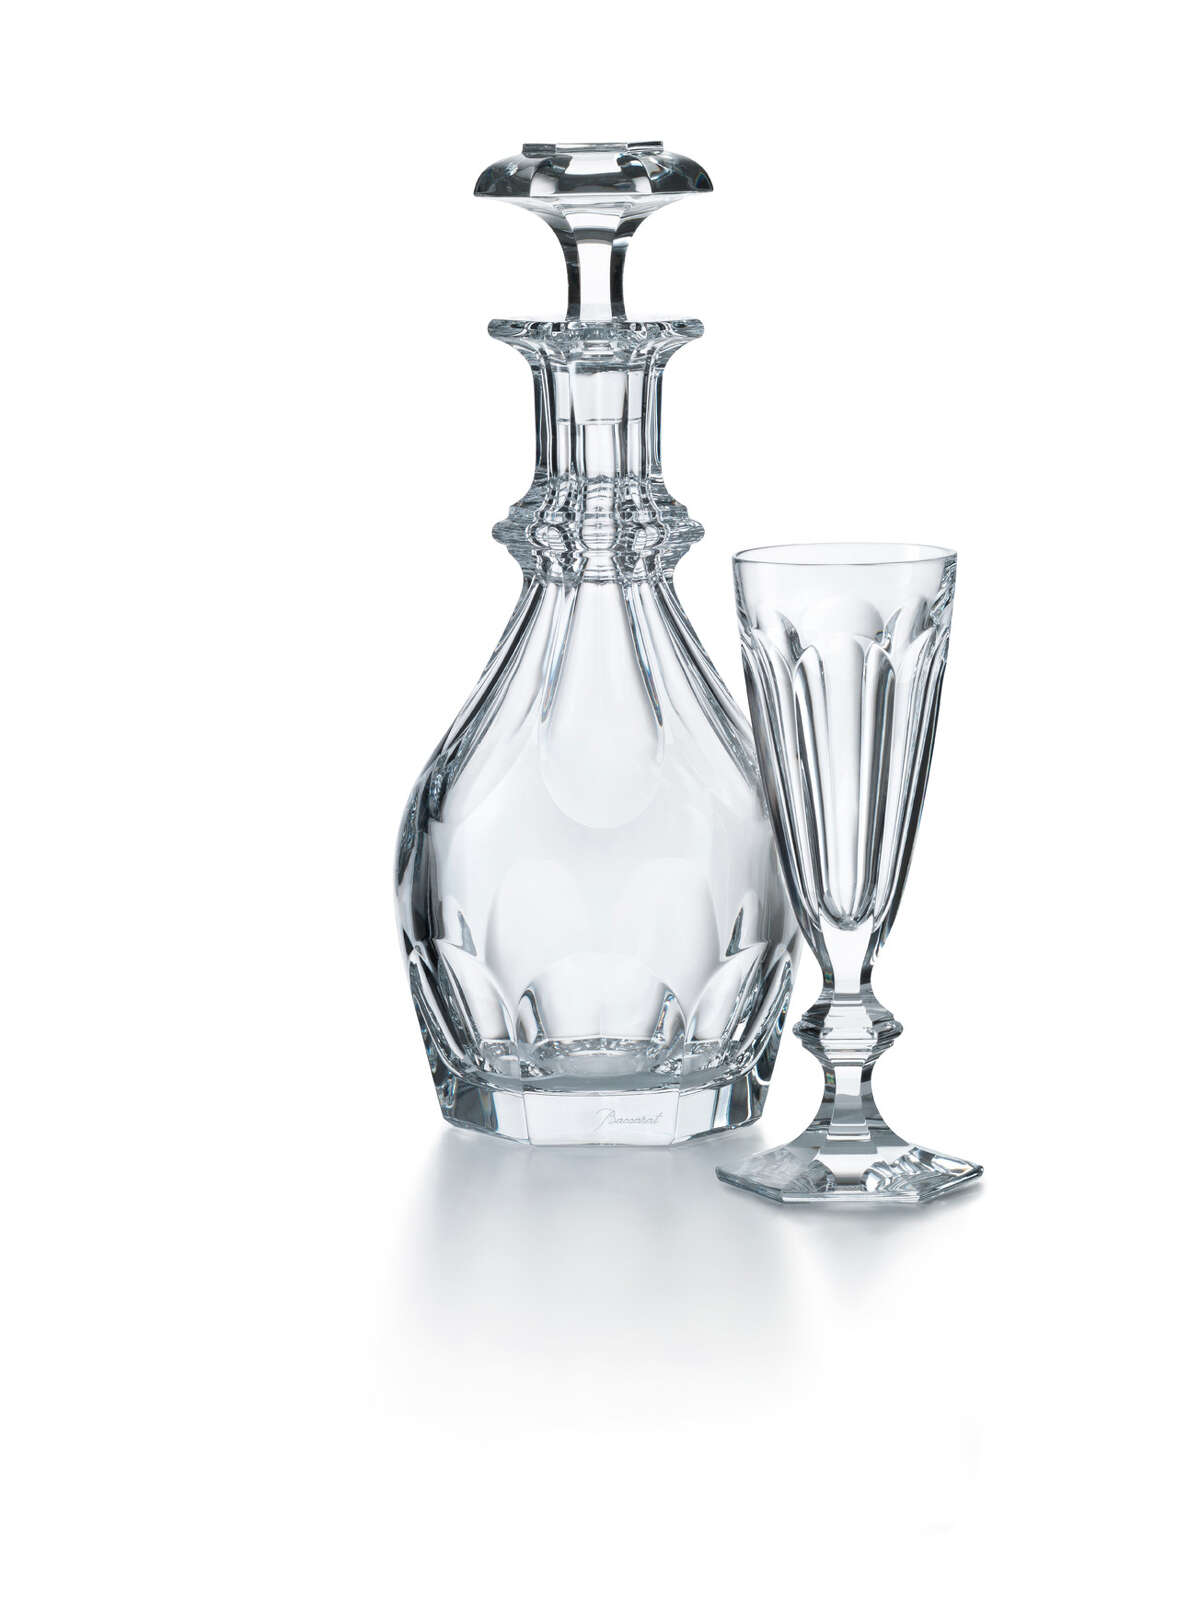 Harcourt decanter and champagne flute by Baccarat; $1,250 (decanter) and $210 (flute) at Baccarat in the Galleria.